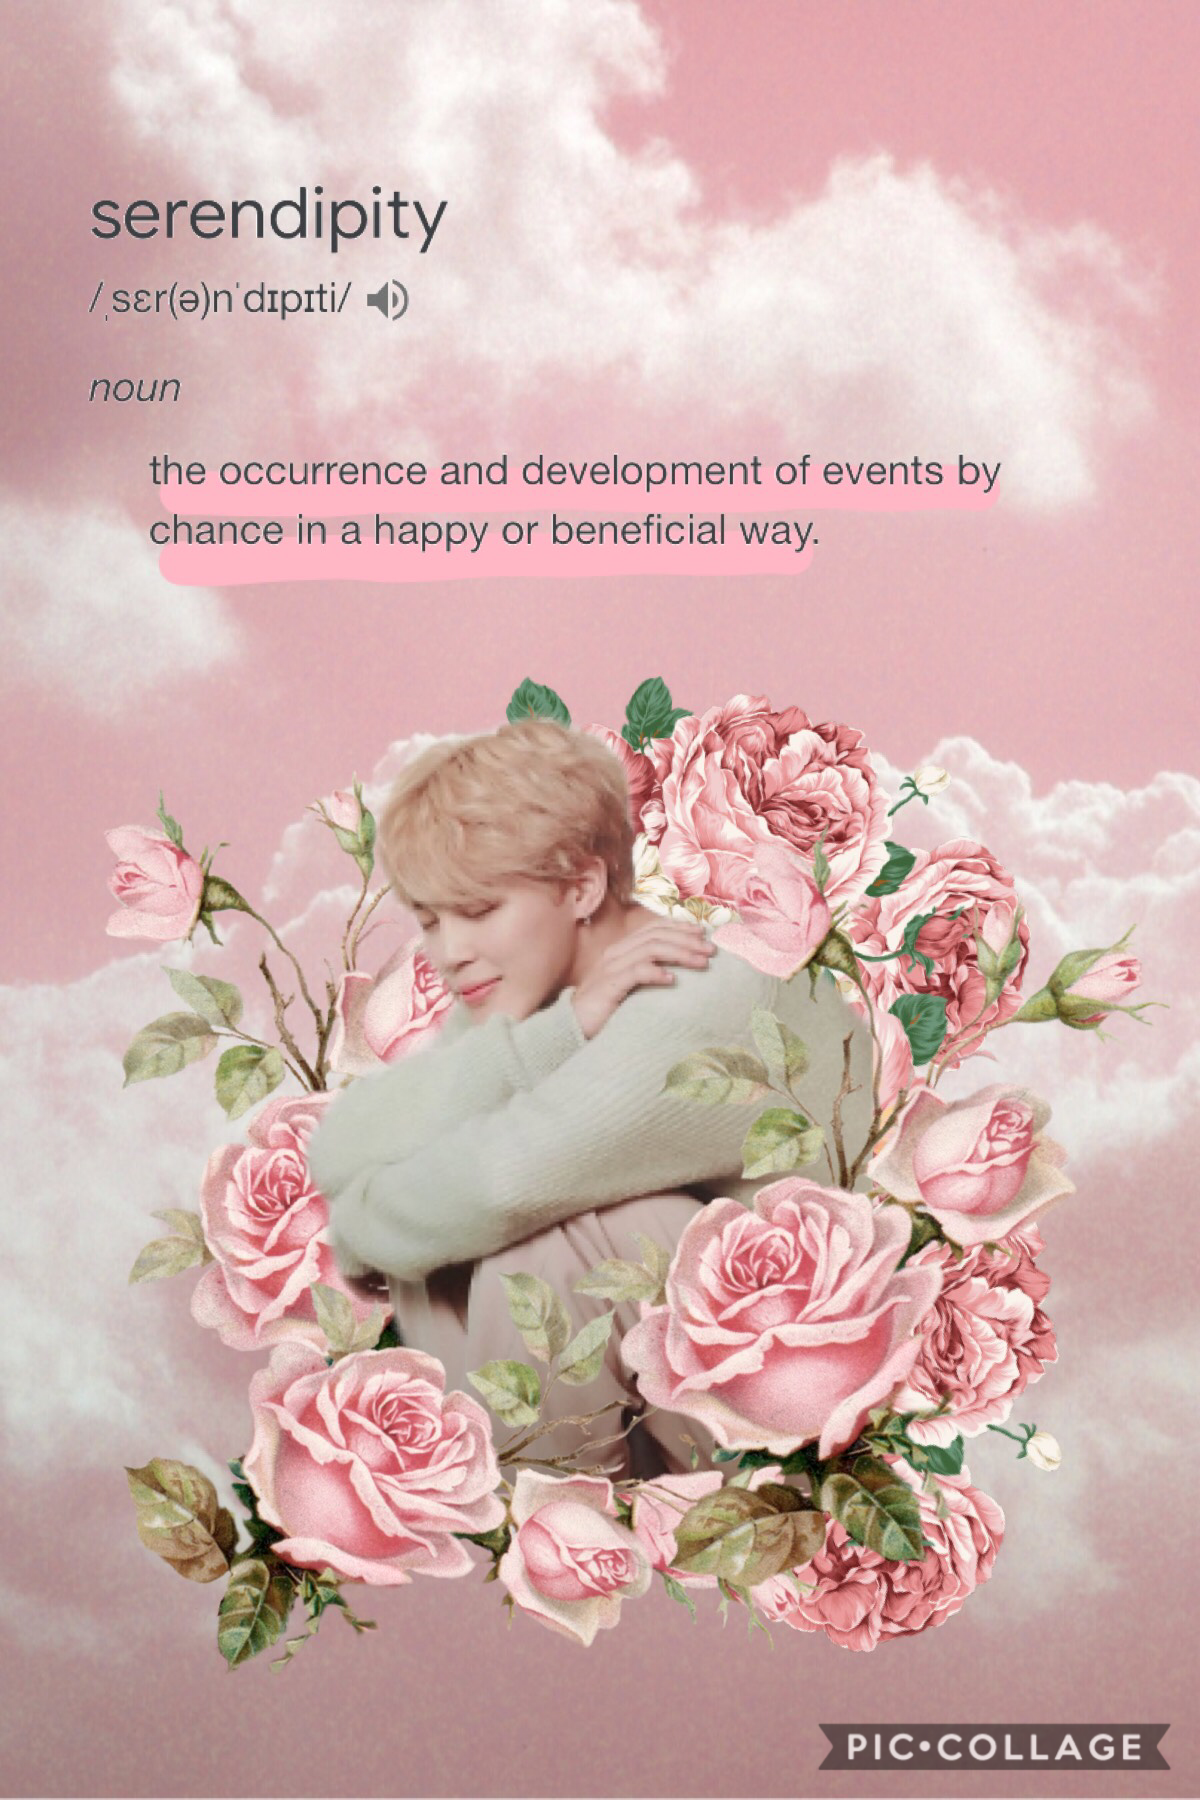 💞Tap💞 - Omg I haven't posted an edit in AGES I've been so busy and so uninspired 😅 - Qotd:favourite BTS song? - Aotd: oooo that's a hard one... seesaw? serendipity? Best of Me? I LOVE ALL